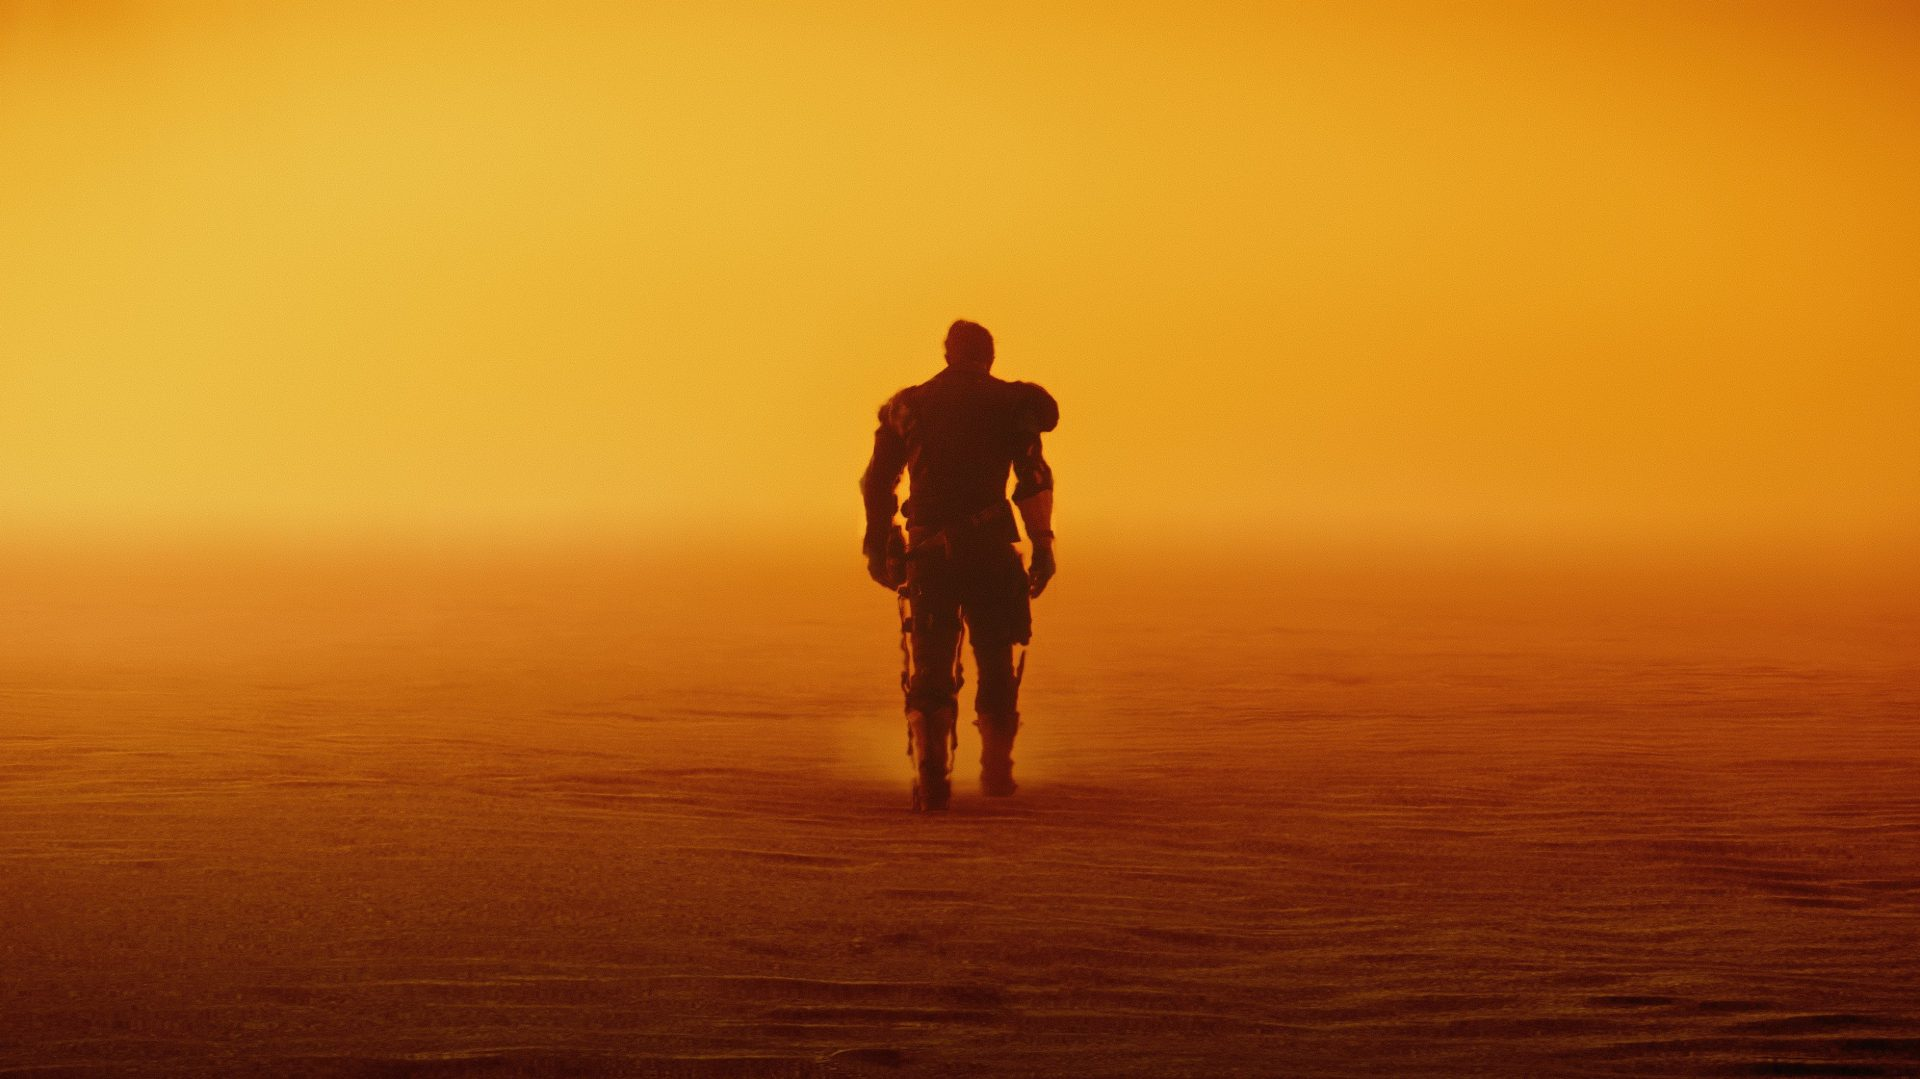 Mad Max protagonist walking in the desert alone.